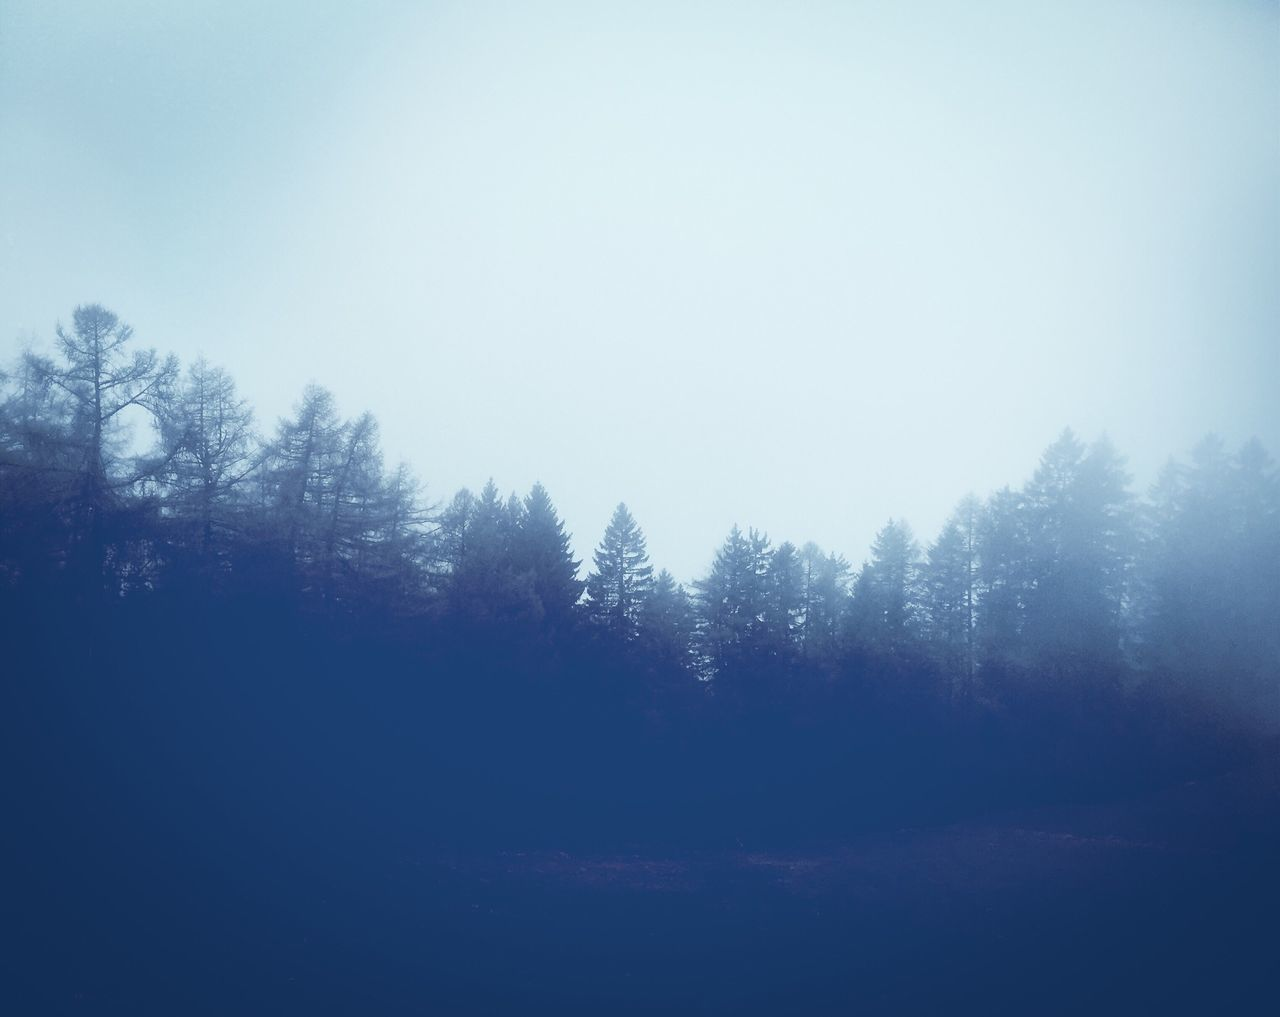 Foggy forest Forest Fog Trees Nature Autumn Foogy Cold Fall Spring Grey Clouds Mysterious Dark Blue Silhouette Mountains Austria Italien Tyrol Mystery Spooky Landscape Cool Winter Spring